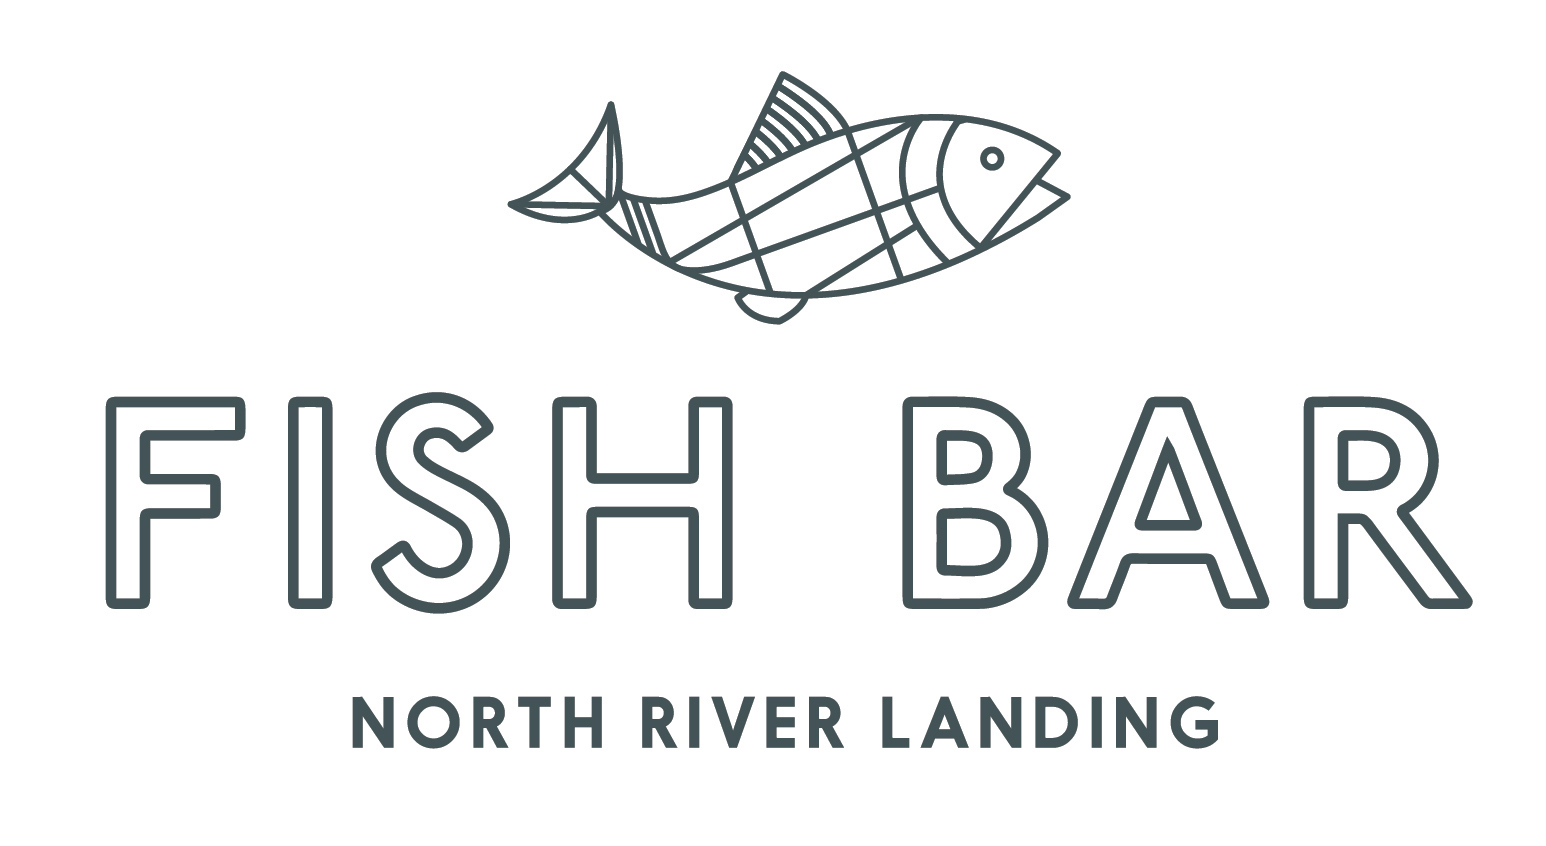 New york cruise lines inc introduces fish bar at north for Fish bar nyc